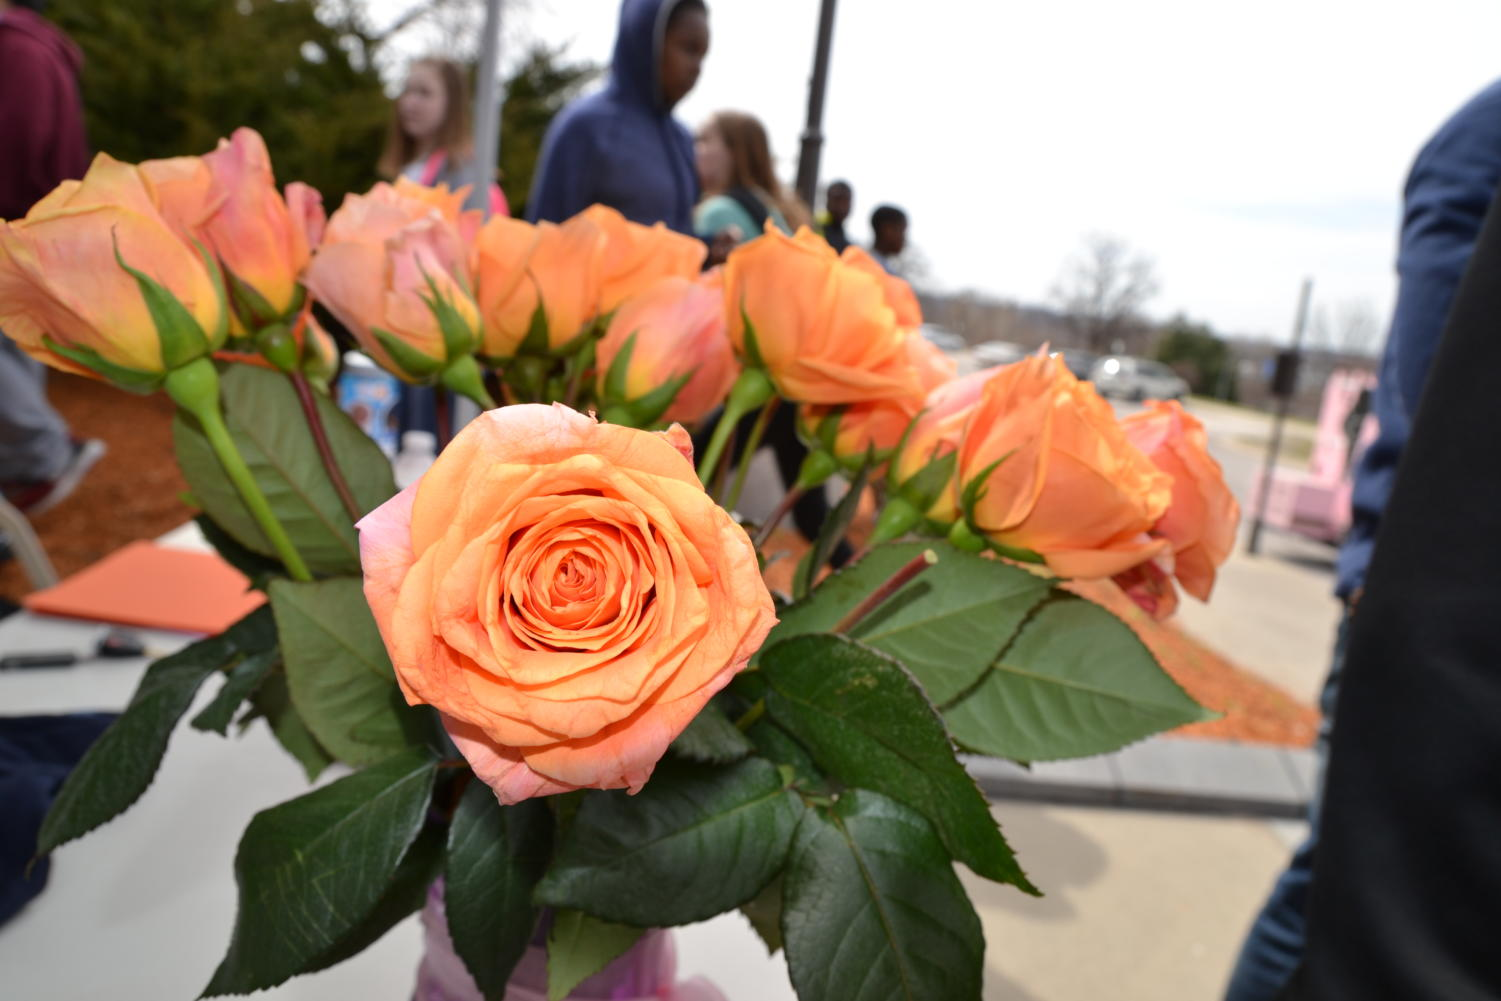 Orange+roses+represent+the+lives+lost+in+the+MSD+school+shooting.